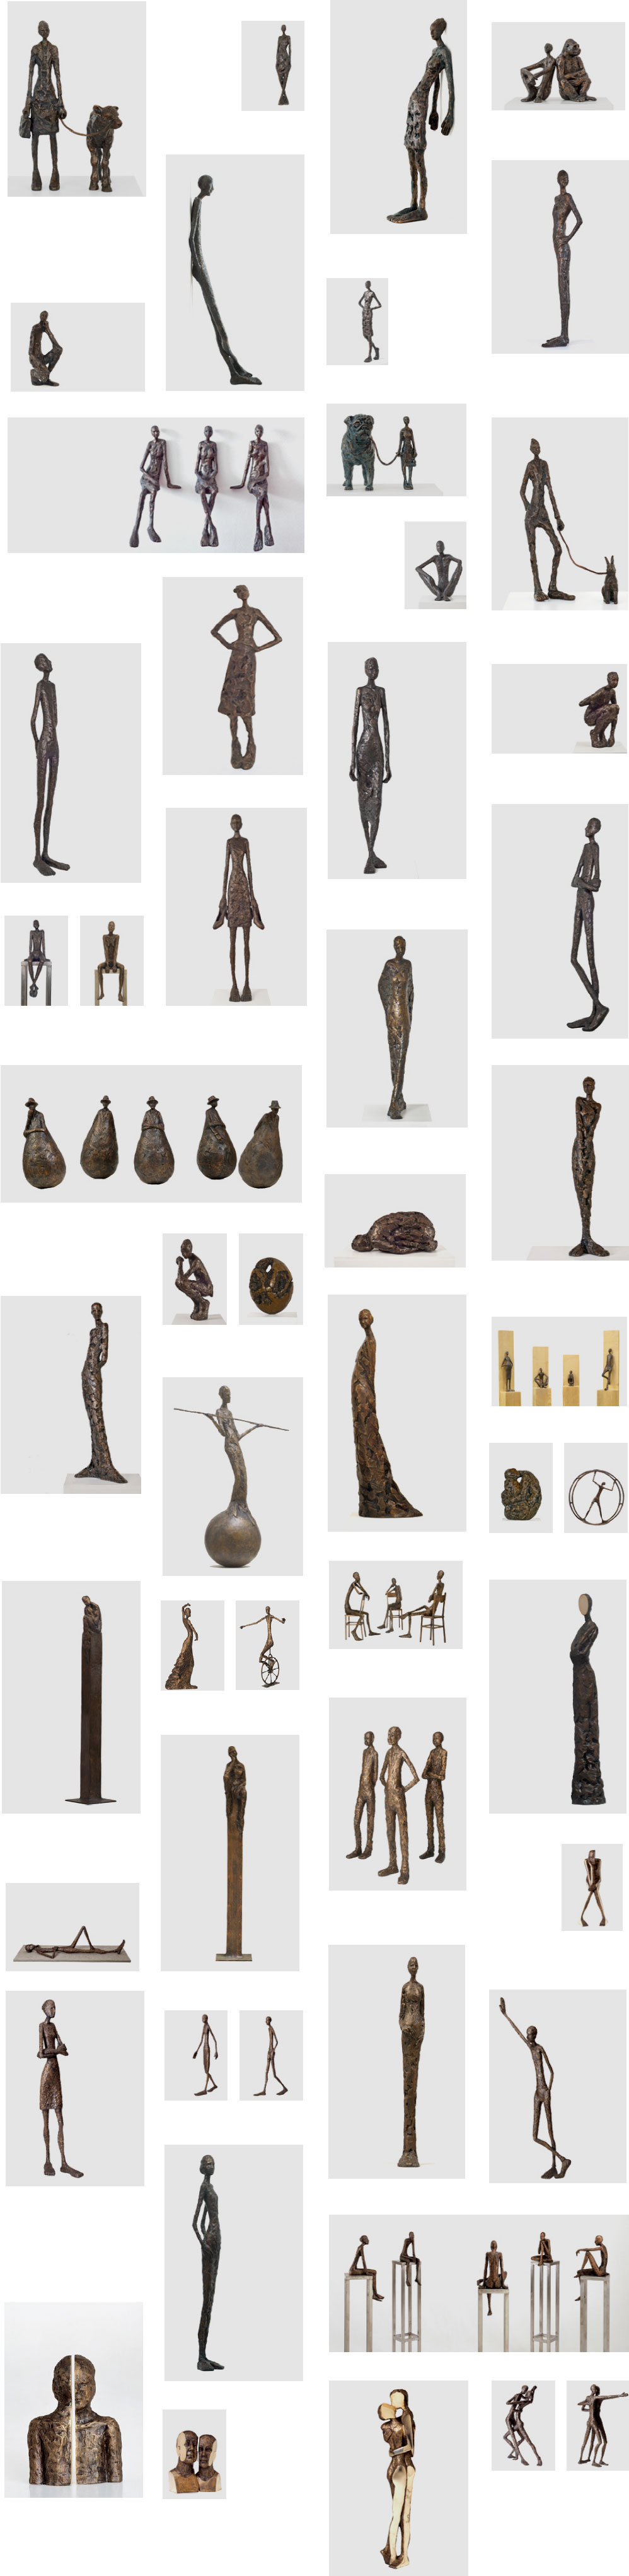 tina-heuter-bronze-768up-2015